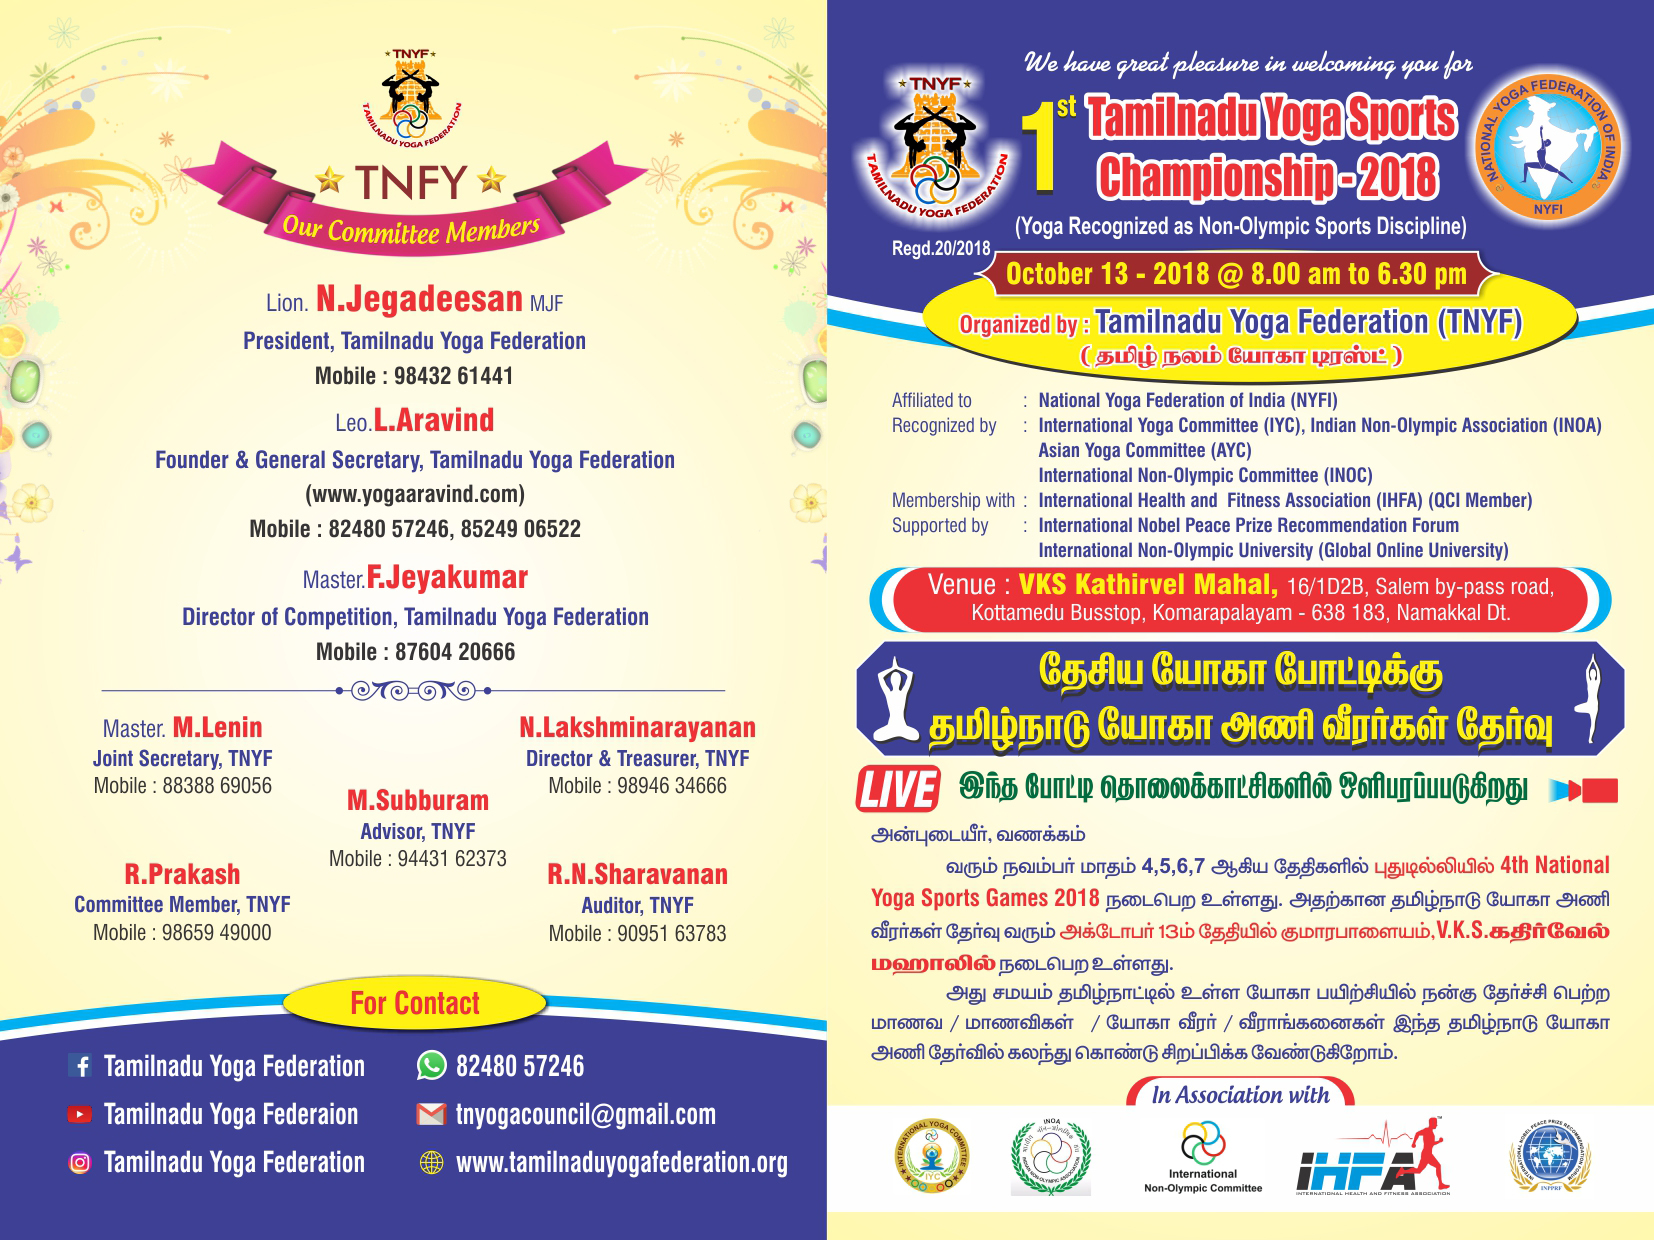 TNYF-Event:- Tamilnadu yoga foundation